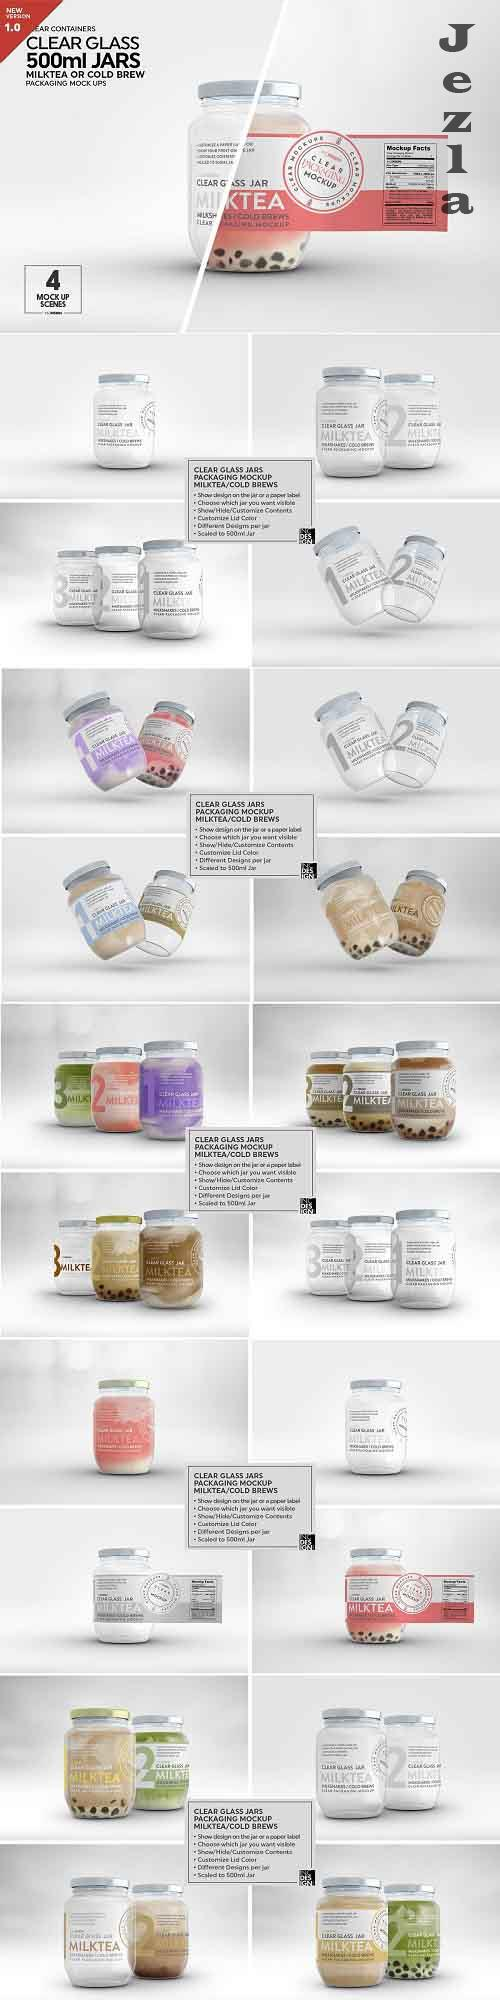 Clear Glass Jar Packaging Mockup - 5444762